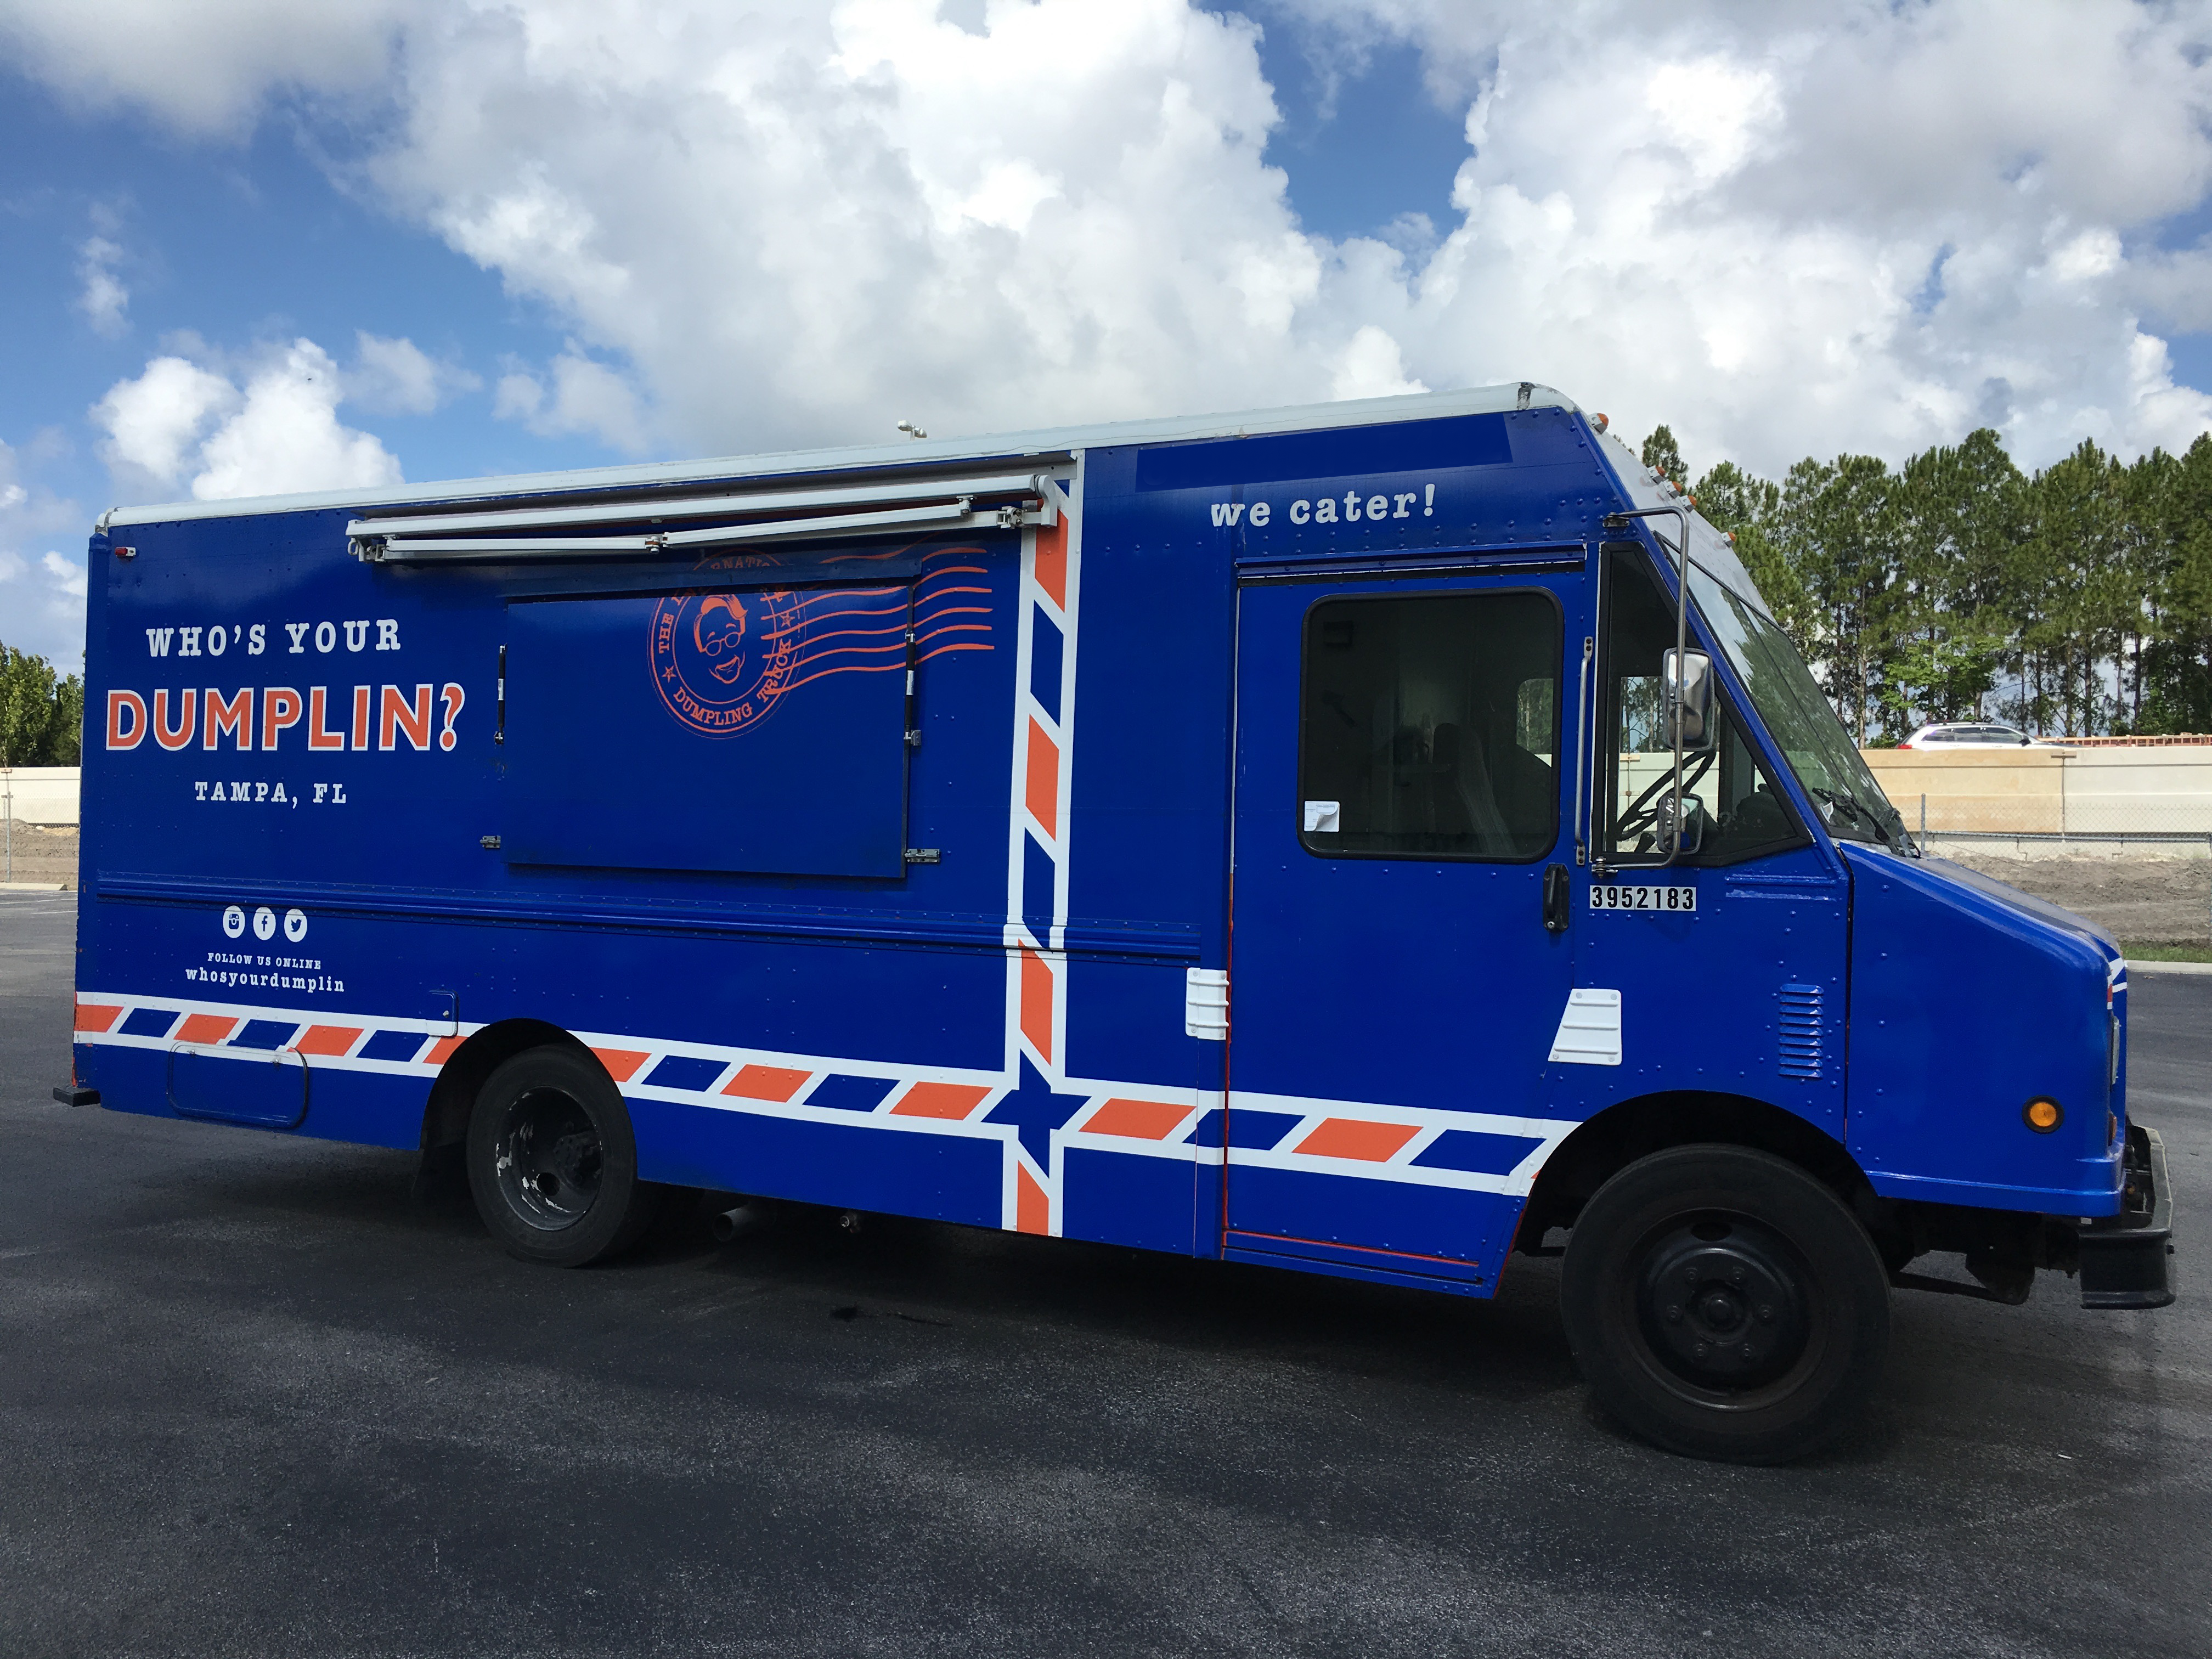 Food Truck For Sale Tampa 26